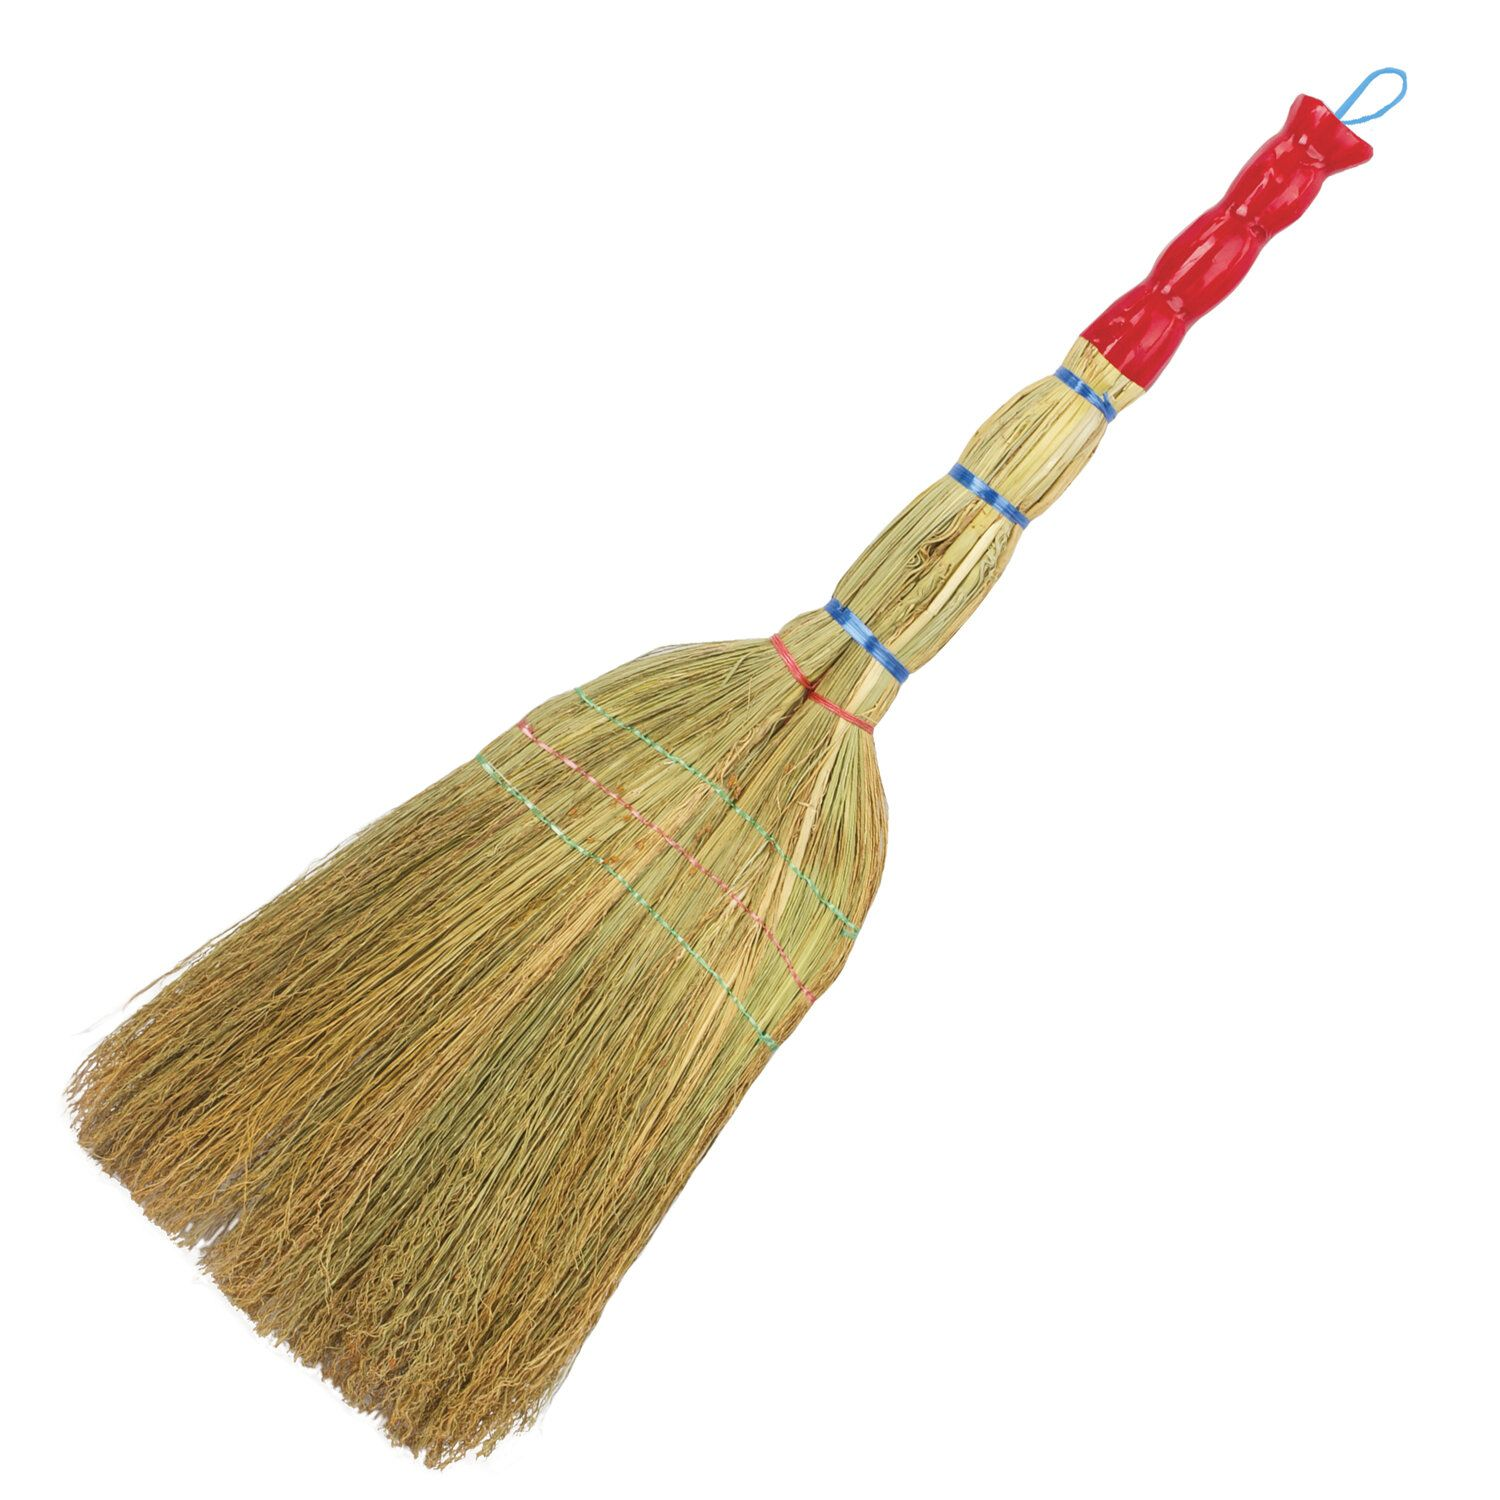 """LIME / Sorghum broom 3-stitched """"Lux"""", handle in foil, 360-380 g, panicle width 28-31 cm, length 79 cm"""